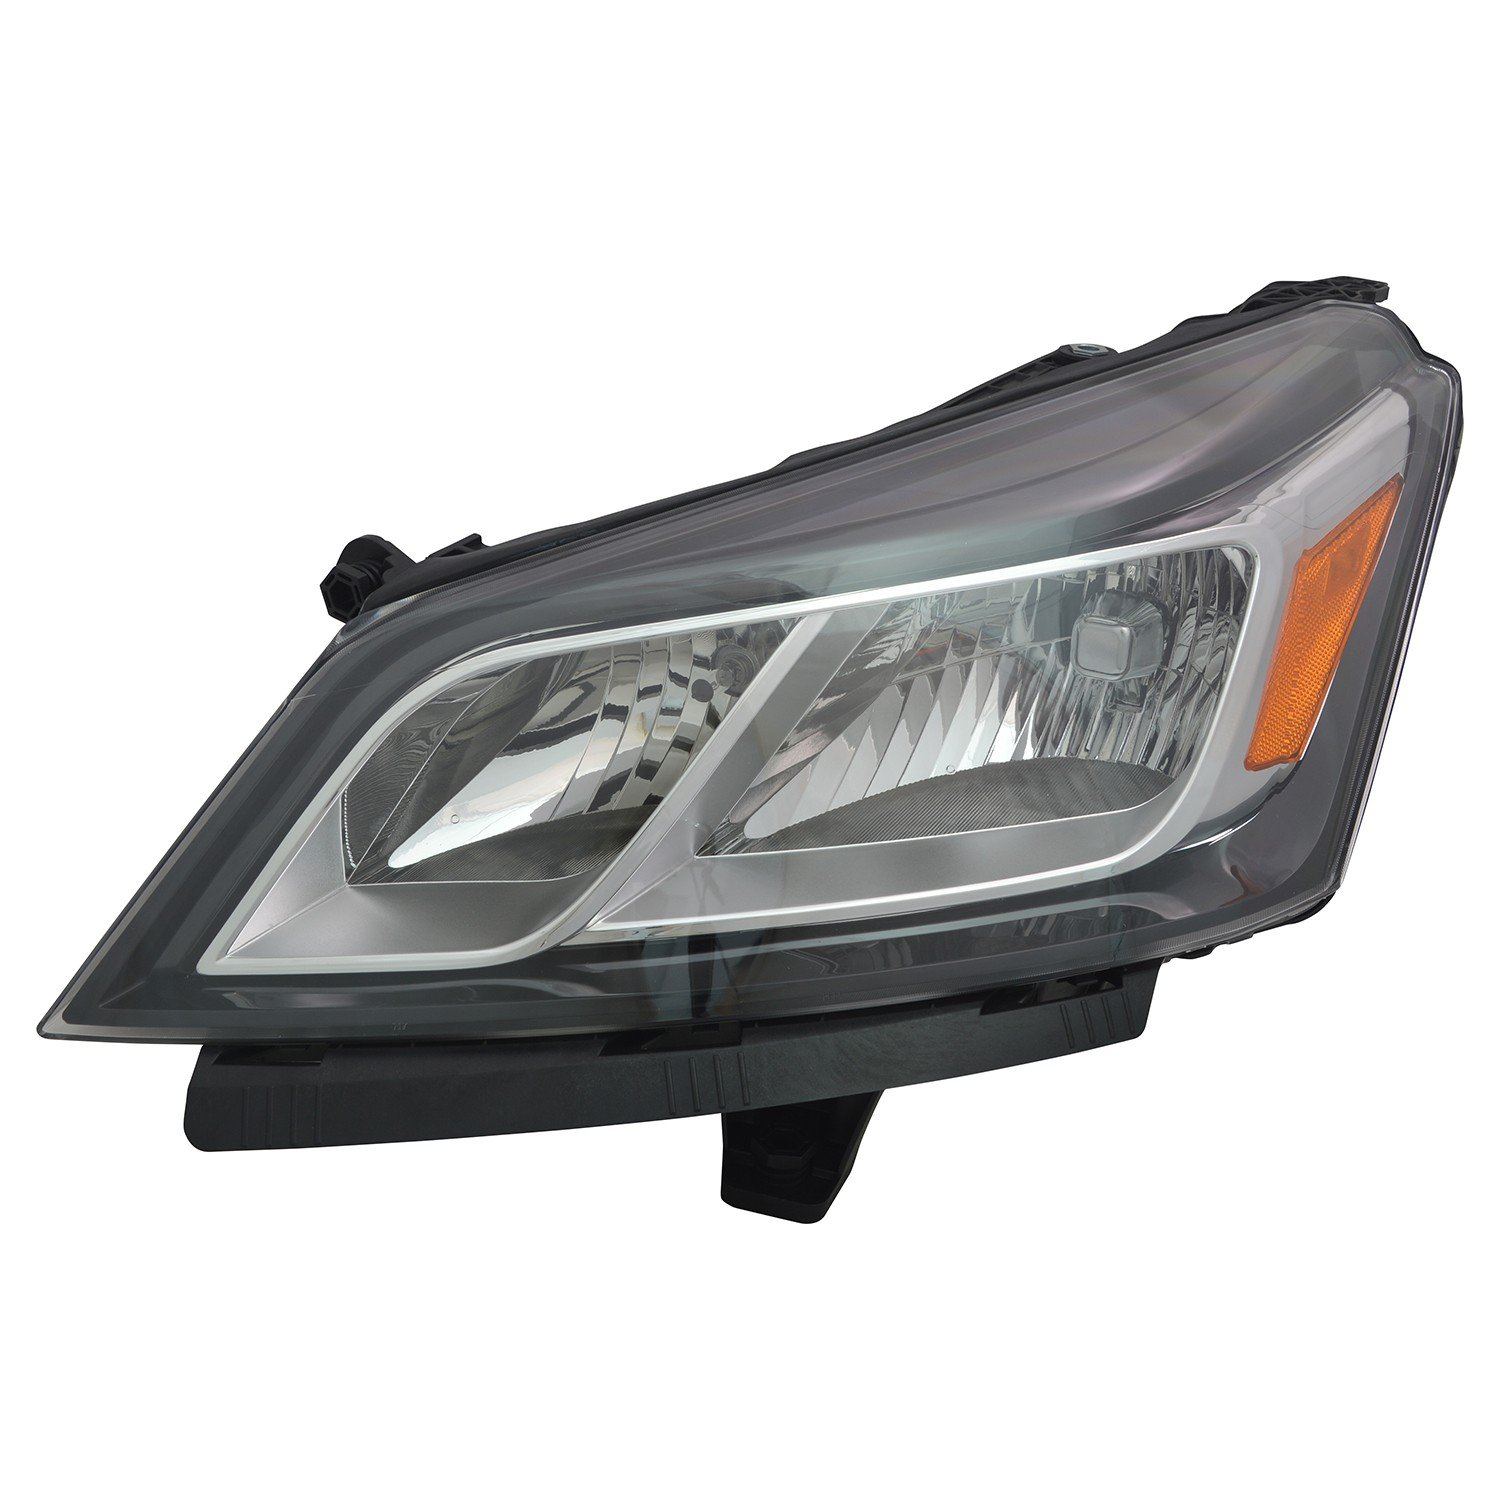 OE Replacement CHEVROLET TRAVERSE Headlight Assembly Multiple Manufacturers GM2502375C Partslink Number GM2502375